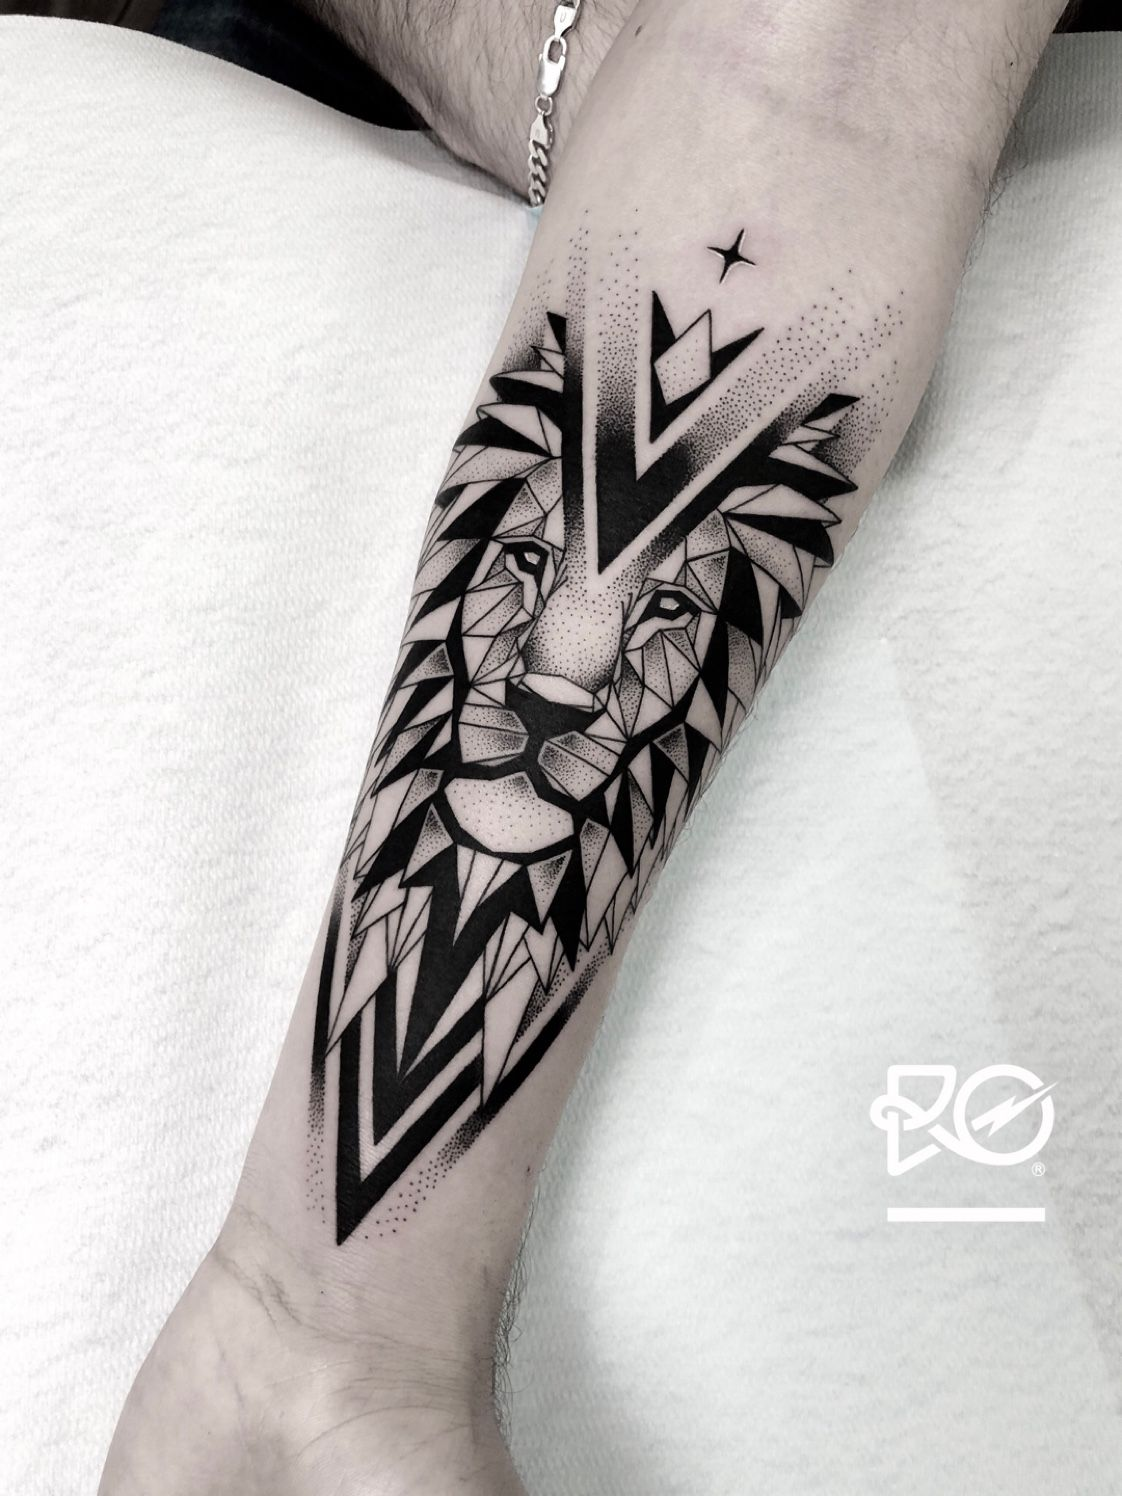 By Ro Robert Pavez The Last Geometric Lion Done In Studio Zoi Tattoo Stockholm 2018 En Forearm Band Tattoos Geometric Lion Tattoo Tattoos For Guys